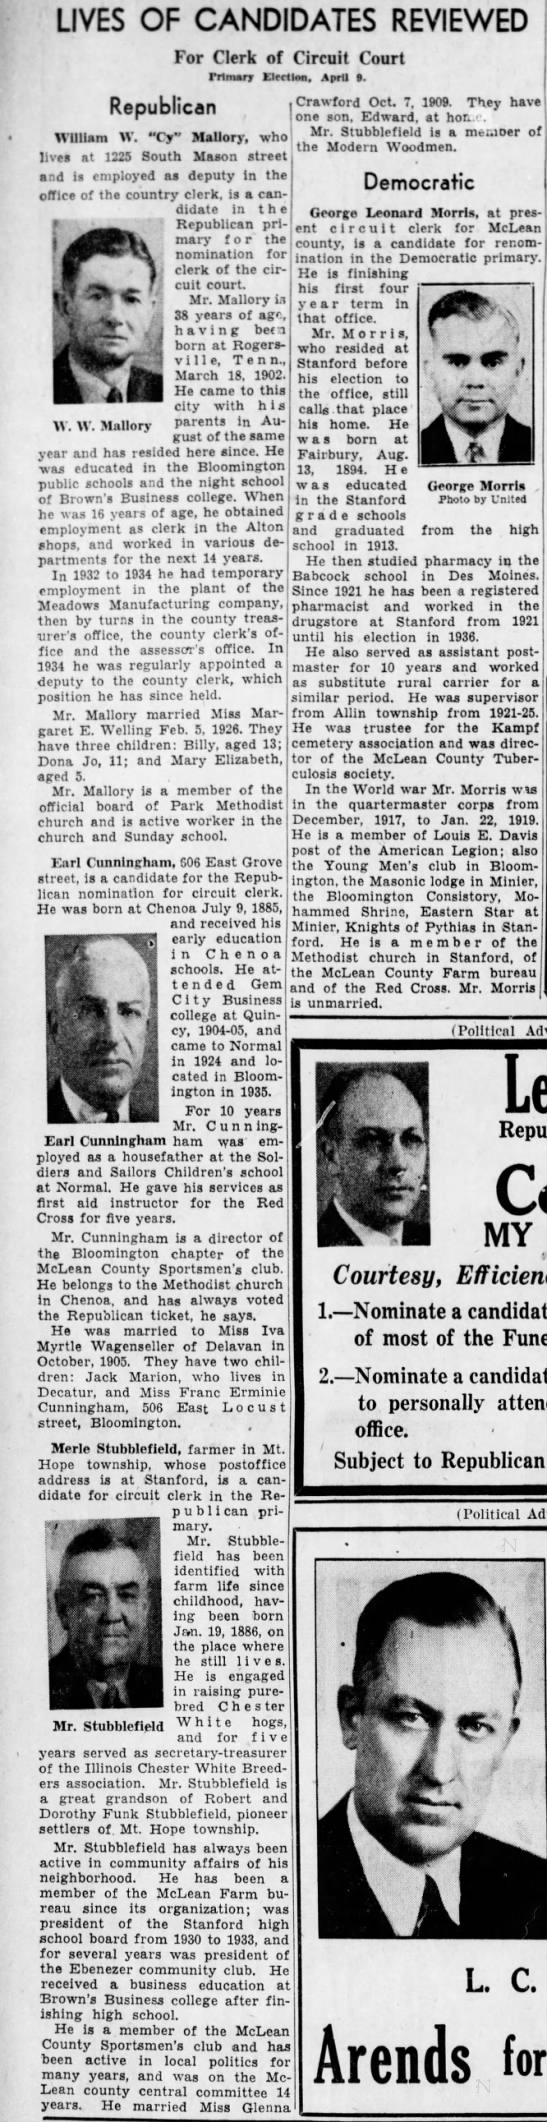 Mar 28, 1940 Merle Stubblfield wedding date in paper bio